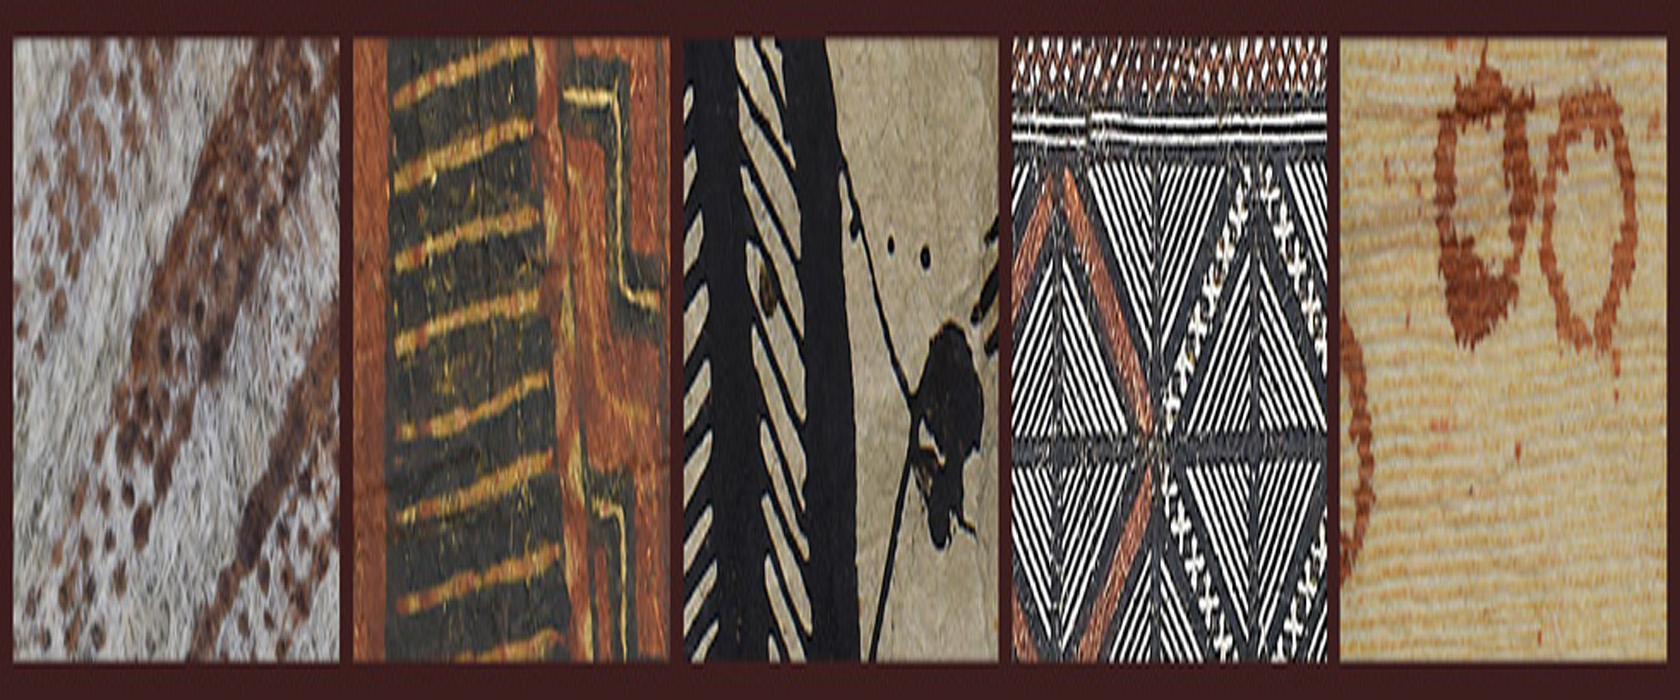 Situating Pacific Barkcloth Production in Time and Place